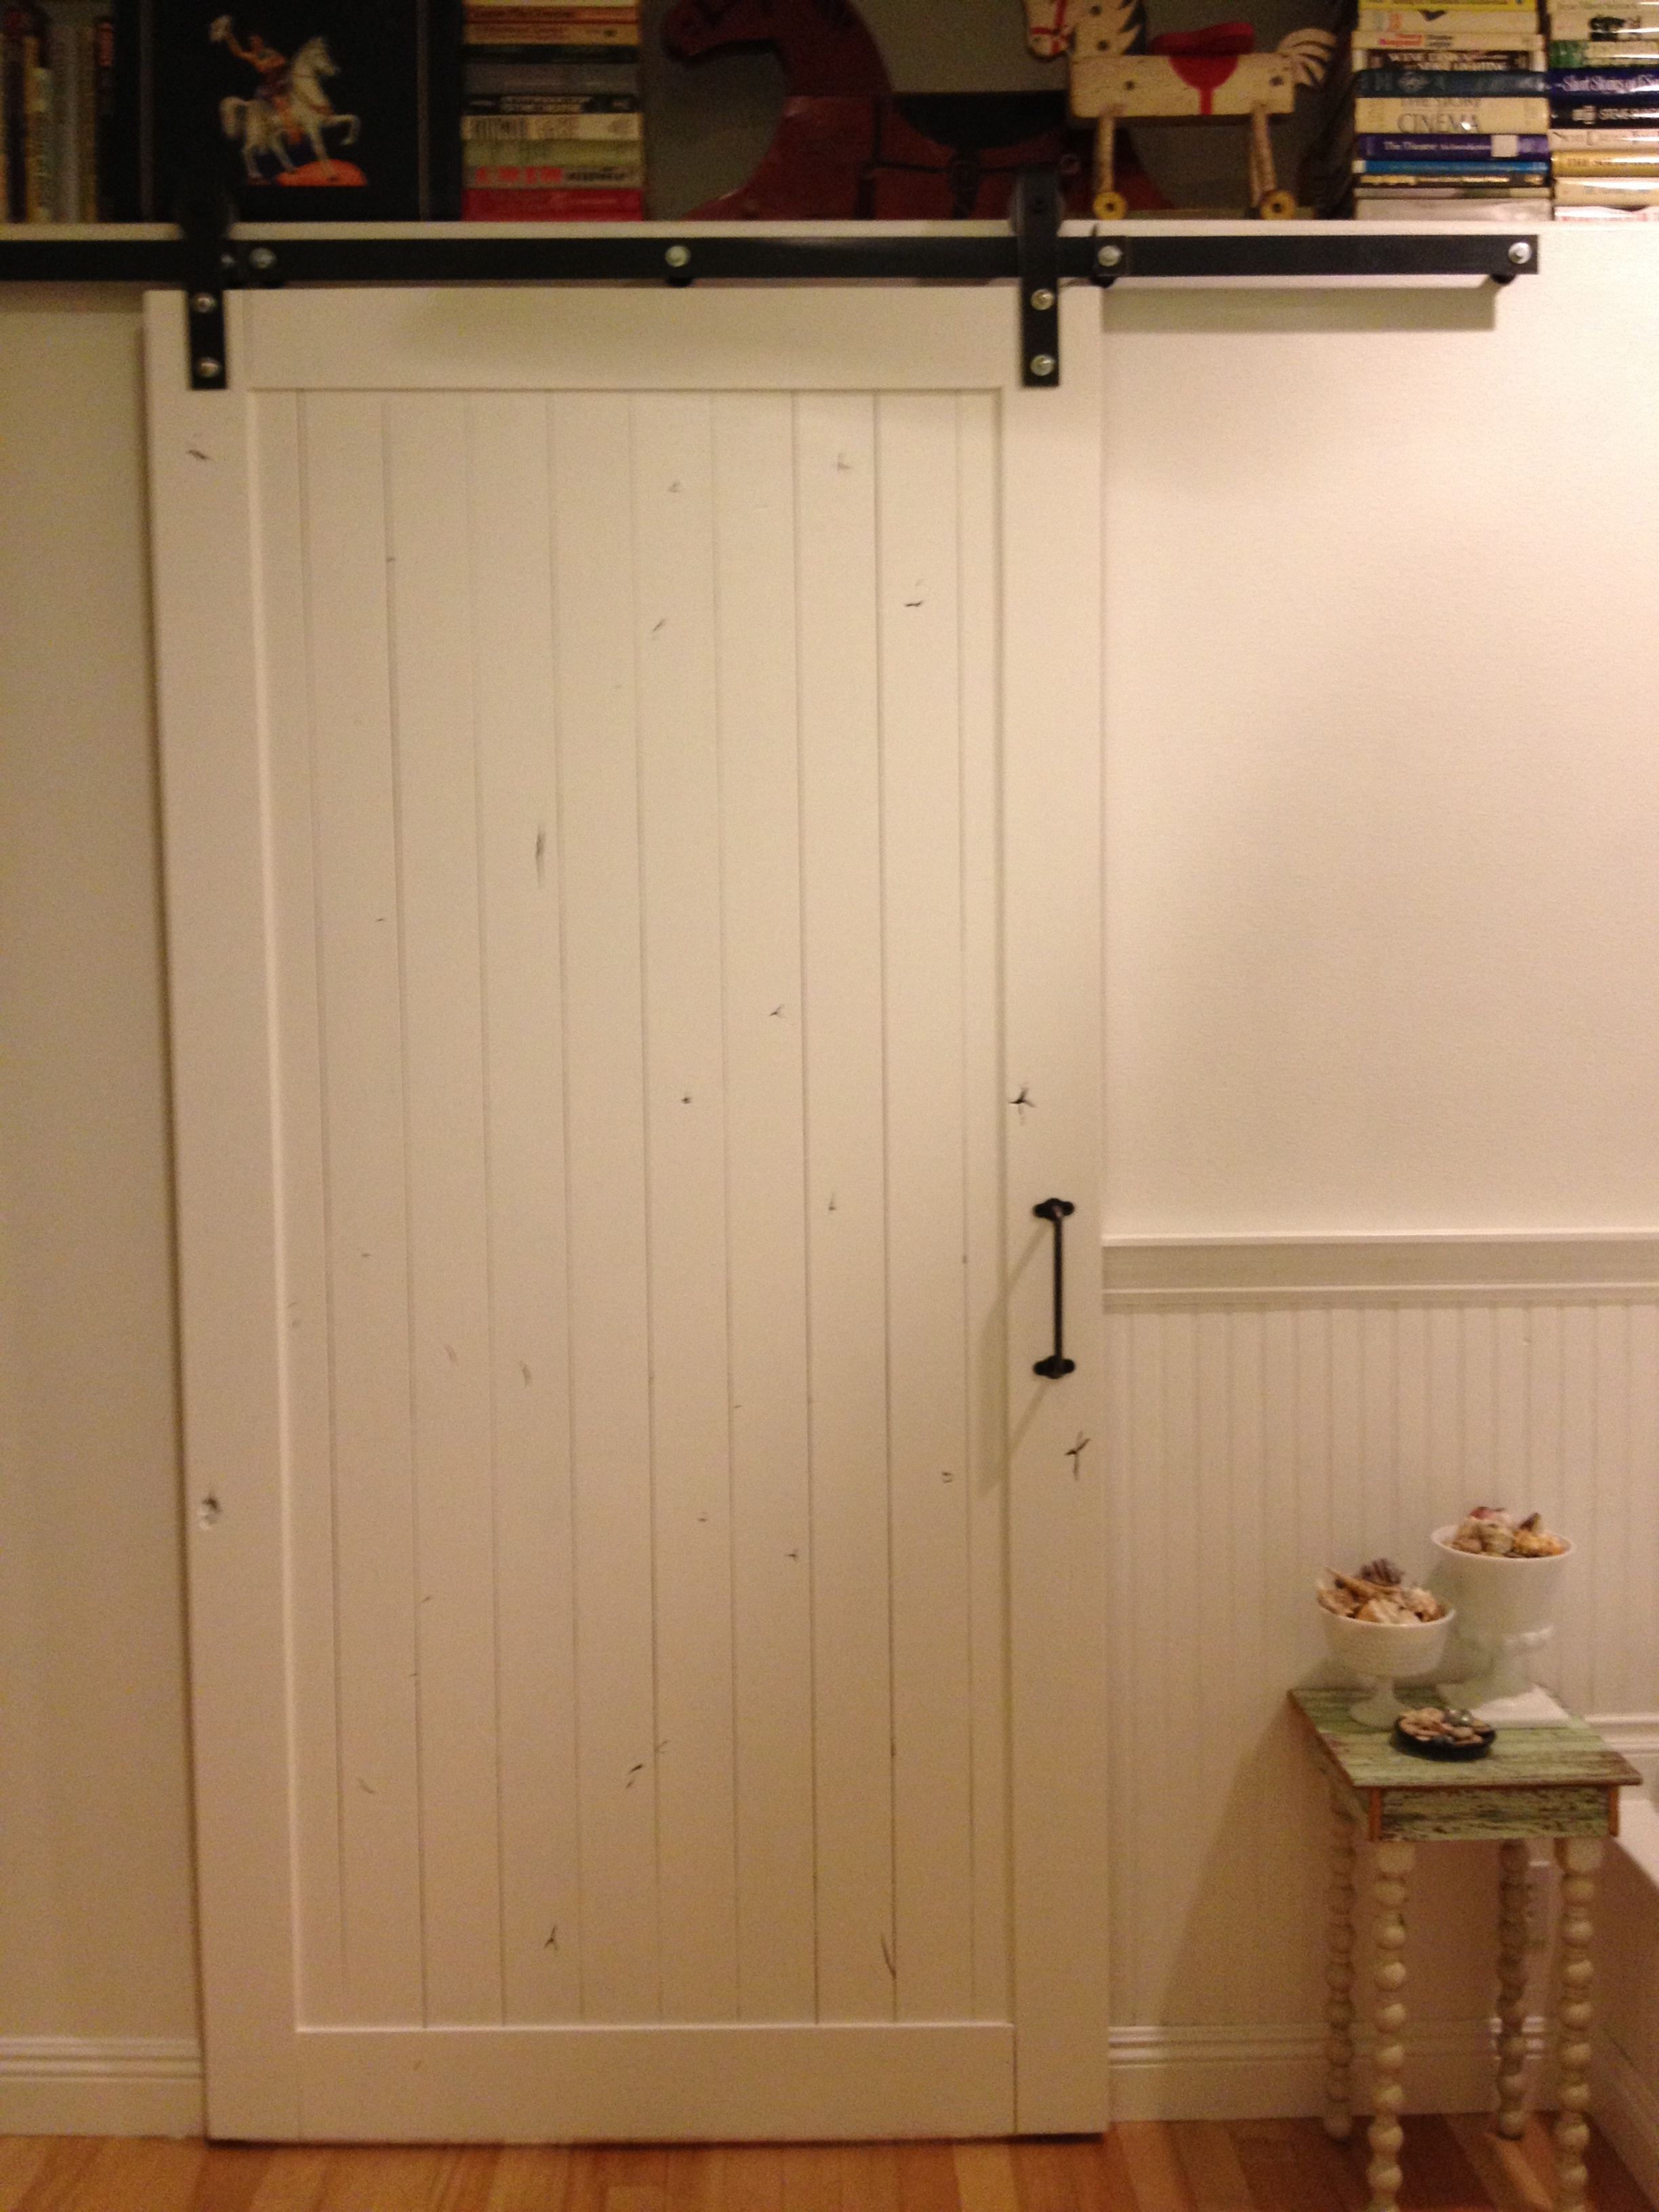 Diy guess who installed her own sliding barn door for Single sliding barn door